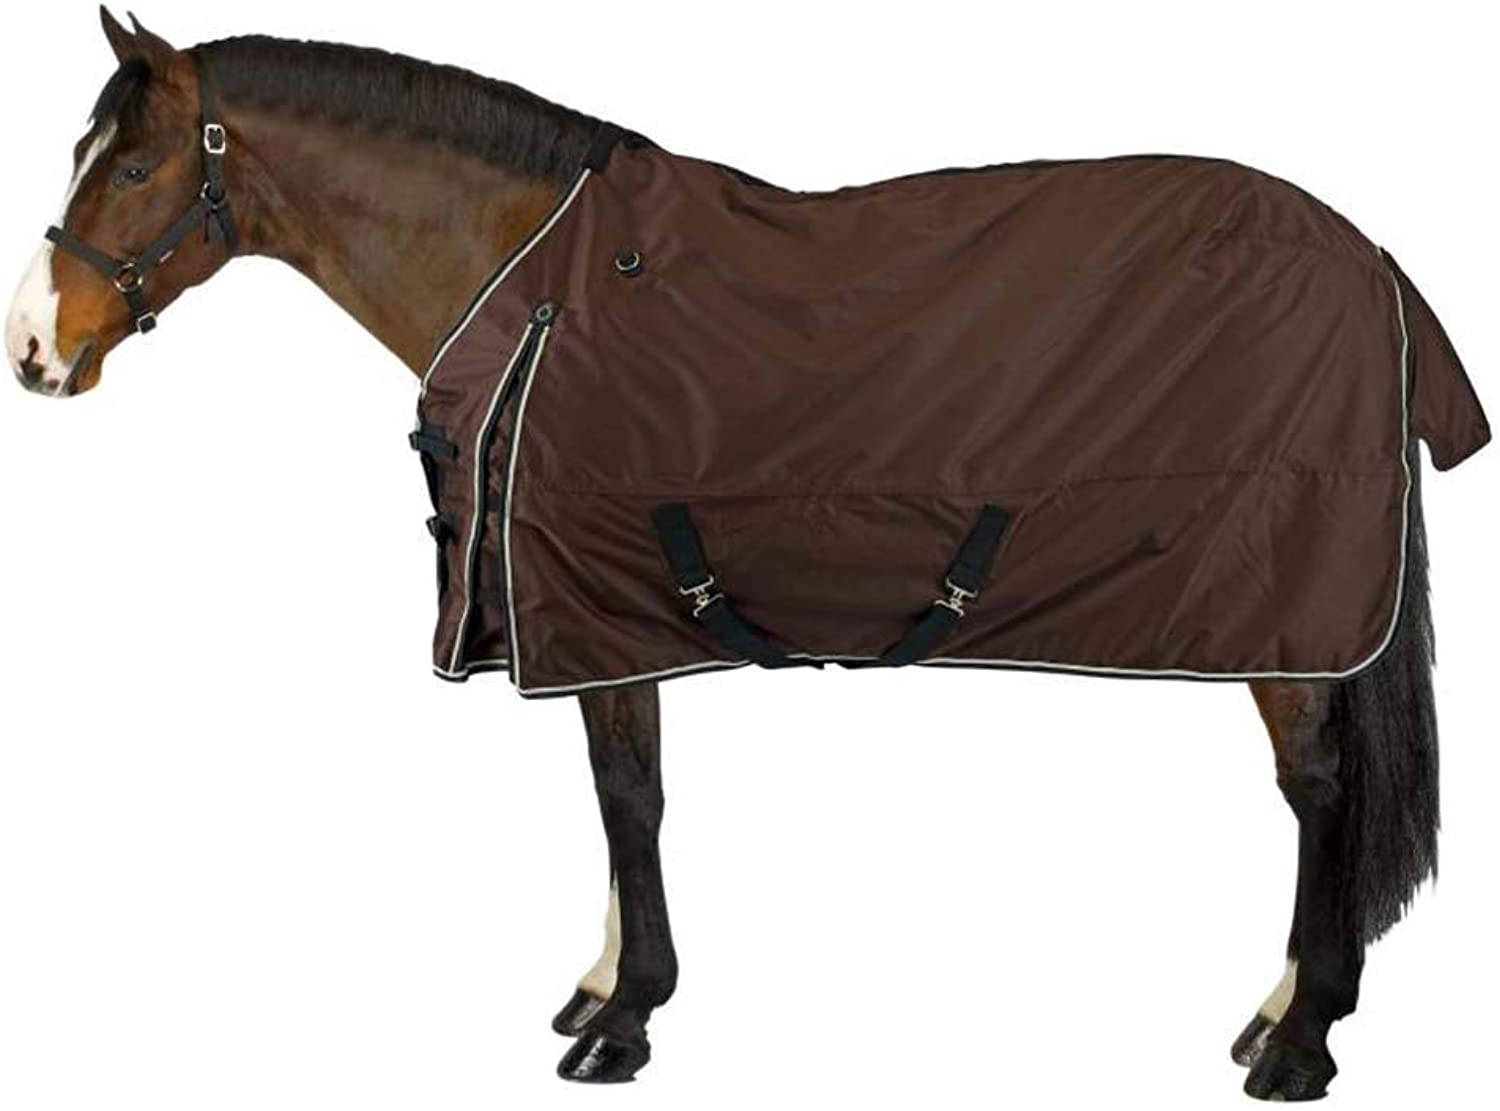 Horse blanket Turnout Rug Combo Winter Full Neck Fill Waterproof Fixed Combo Unisex for Equestrian Pony Horse Riding,Brown,125cm